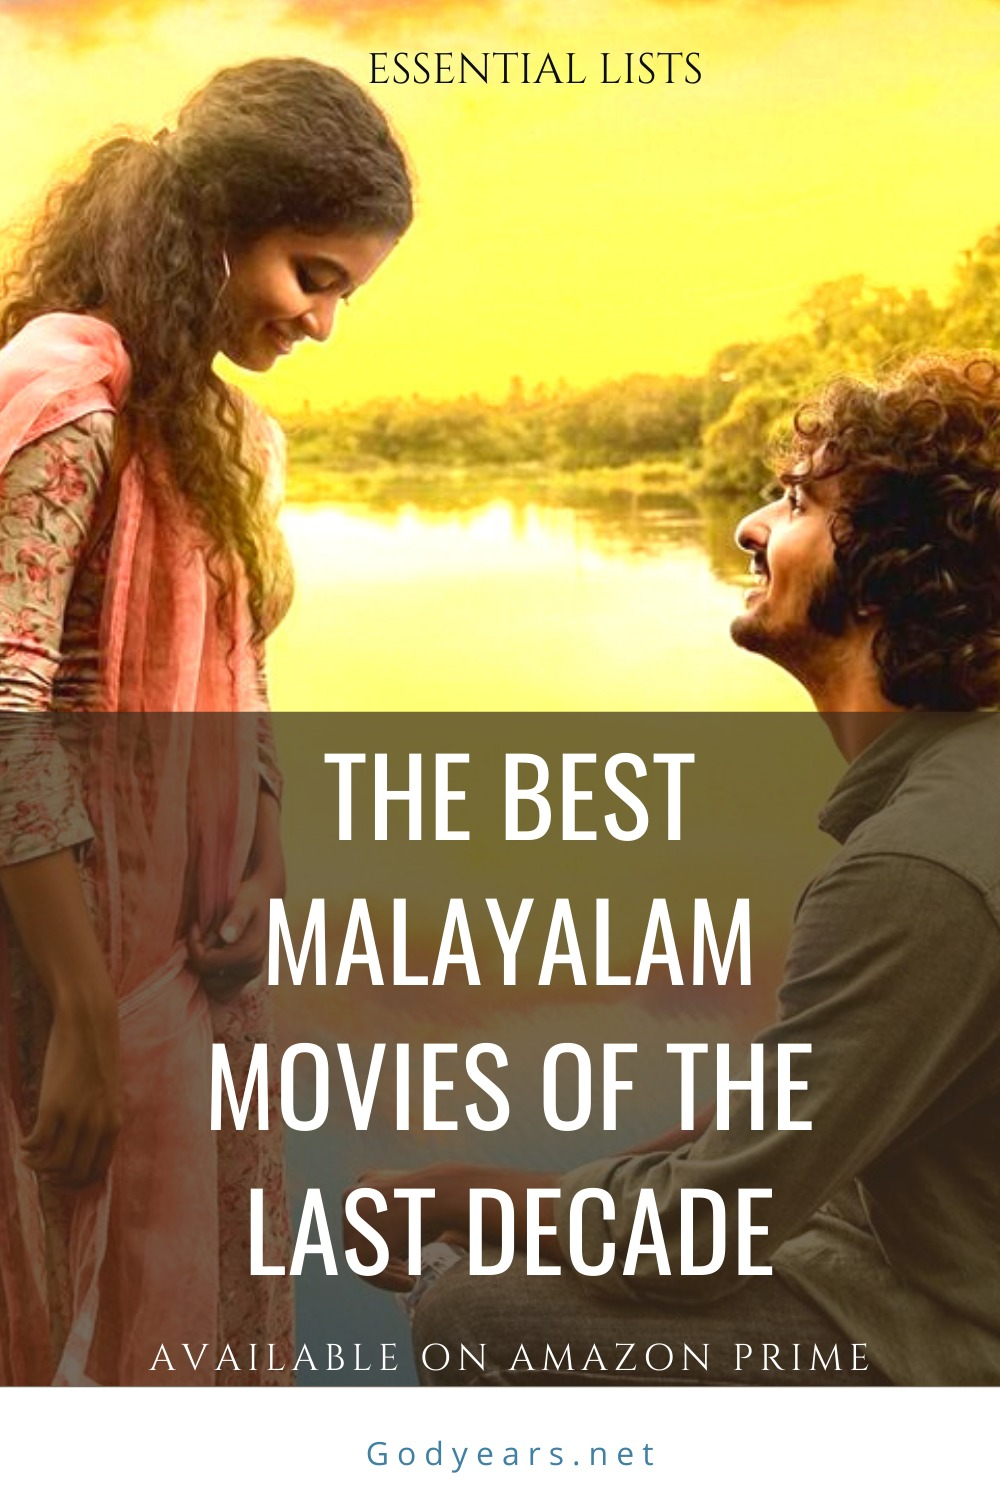 A list of the best Malayalam movies of the last decade available on Amazon Prime